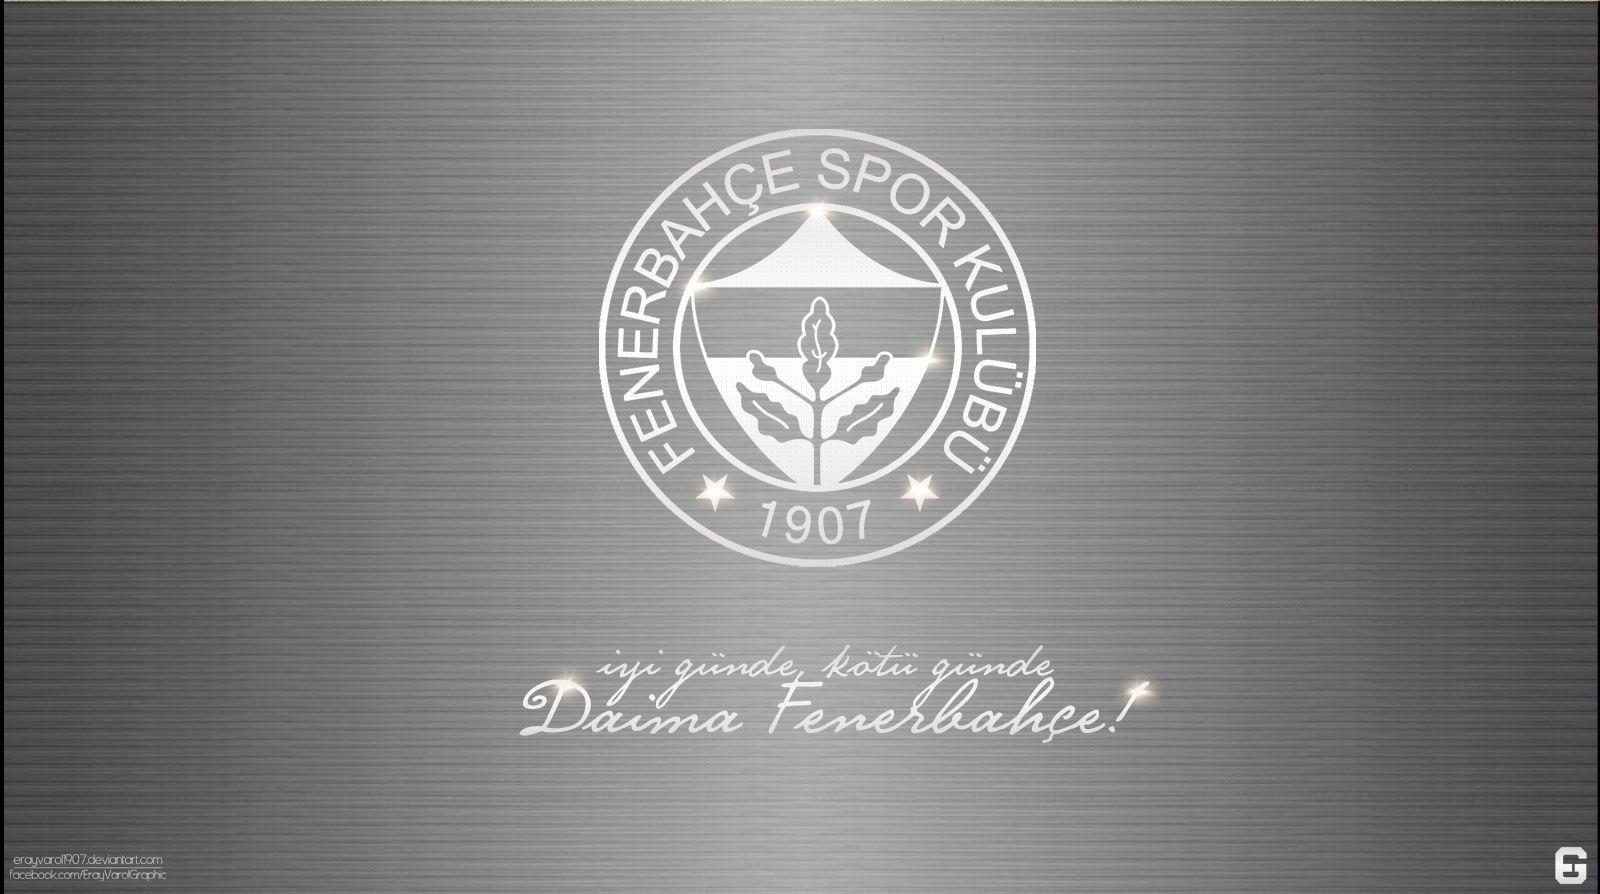 Wallpaper on FenerbahceFans - DeviantArt